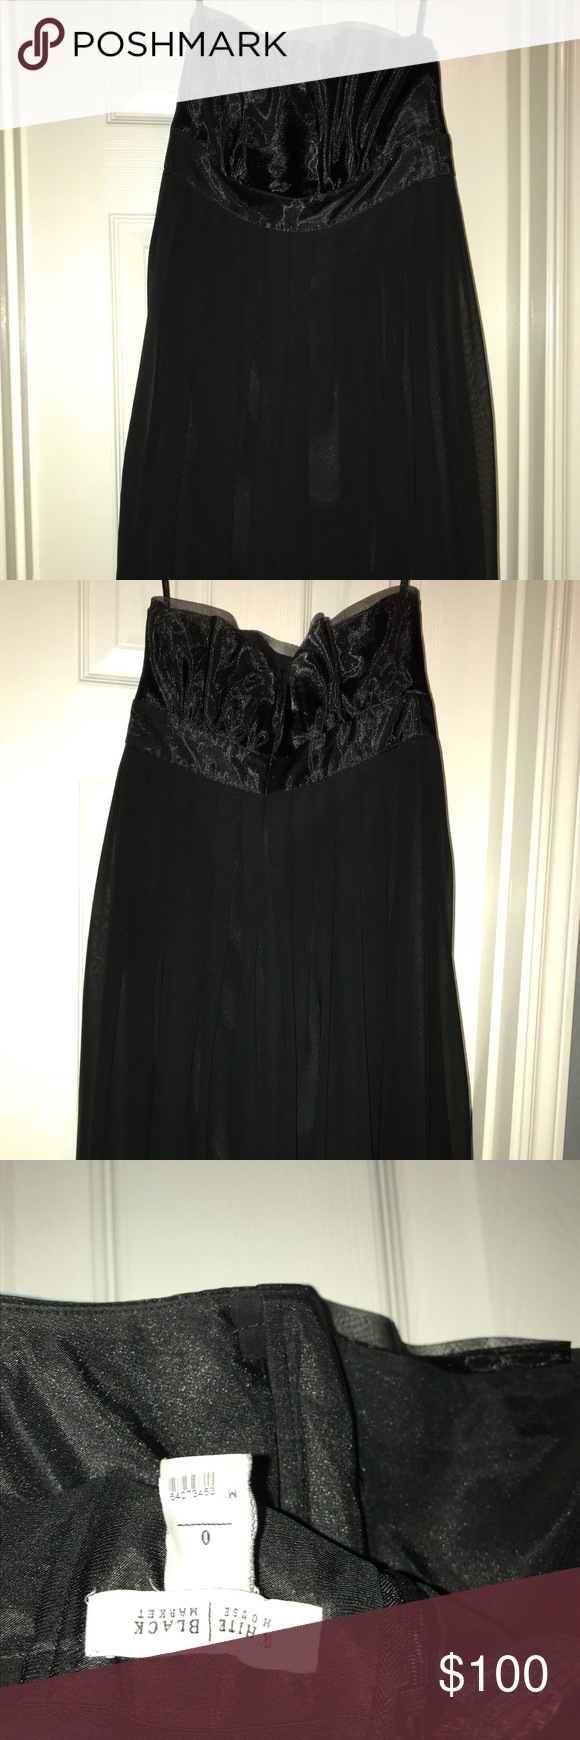 Black semi formal dress white house black market size semi formal